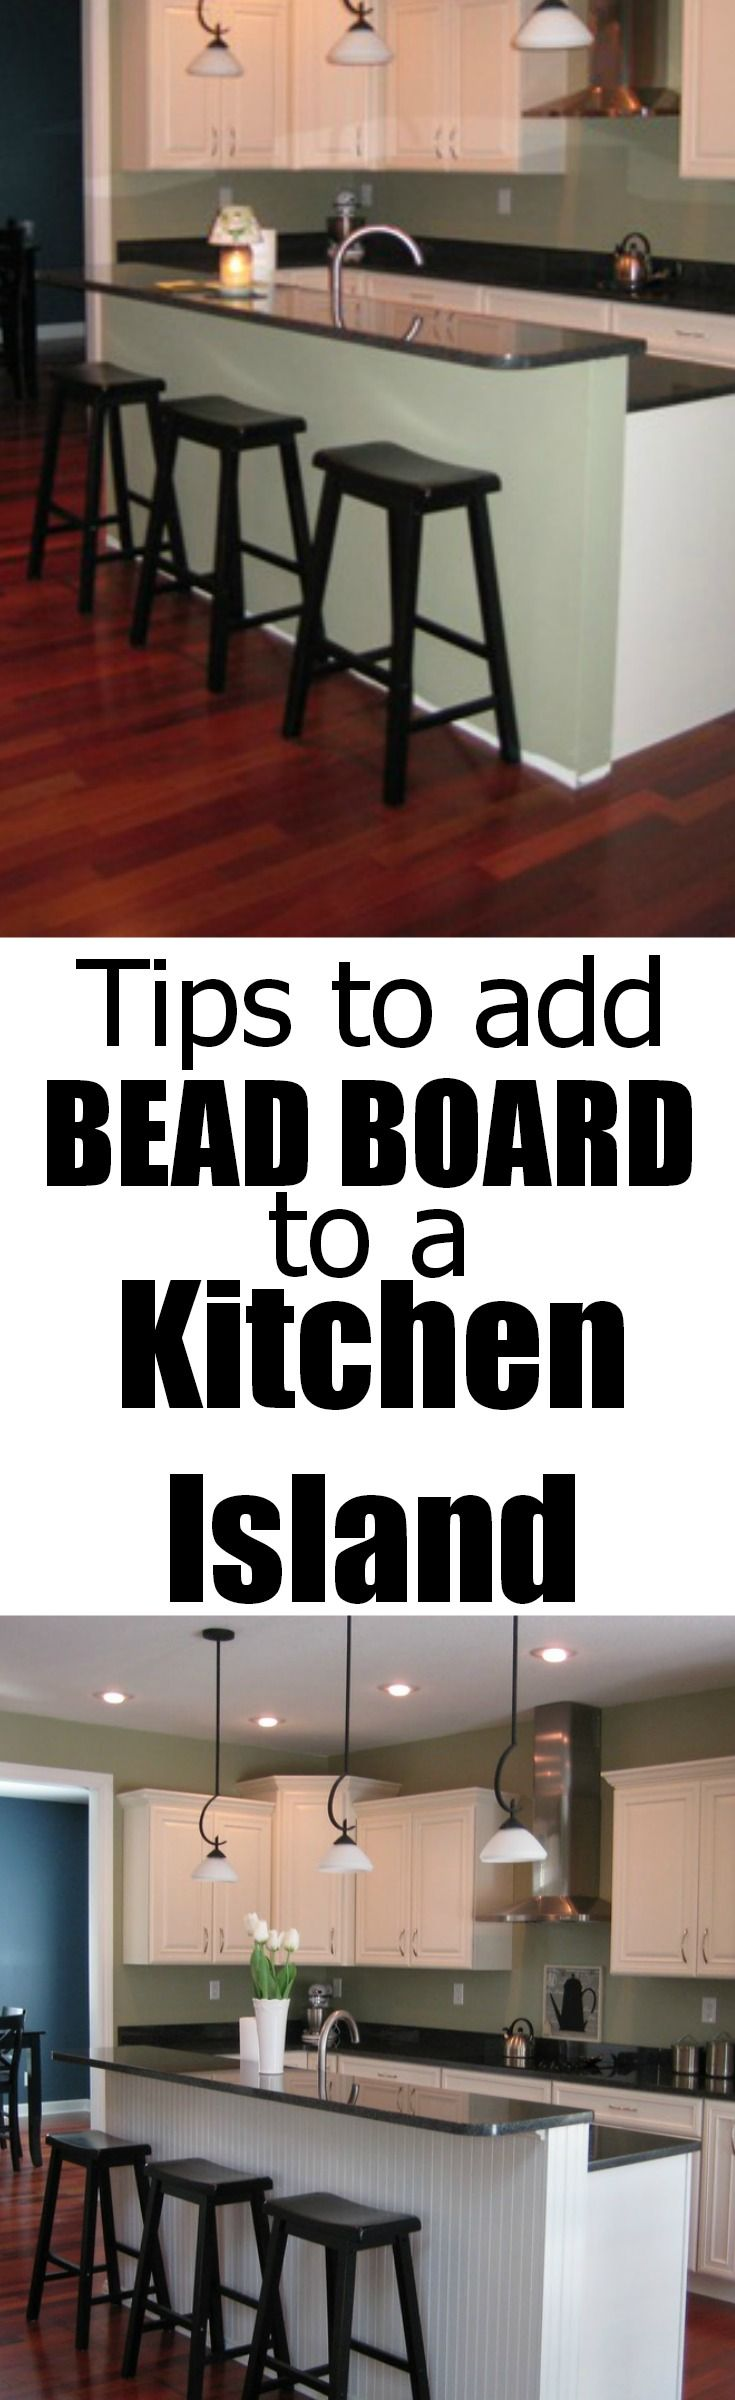 Tips to add bead board to a kitchen island!.  Great tips!